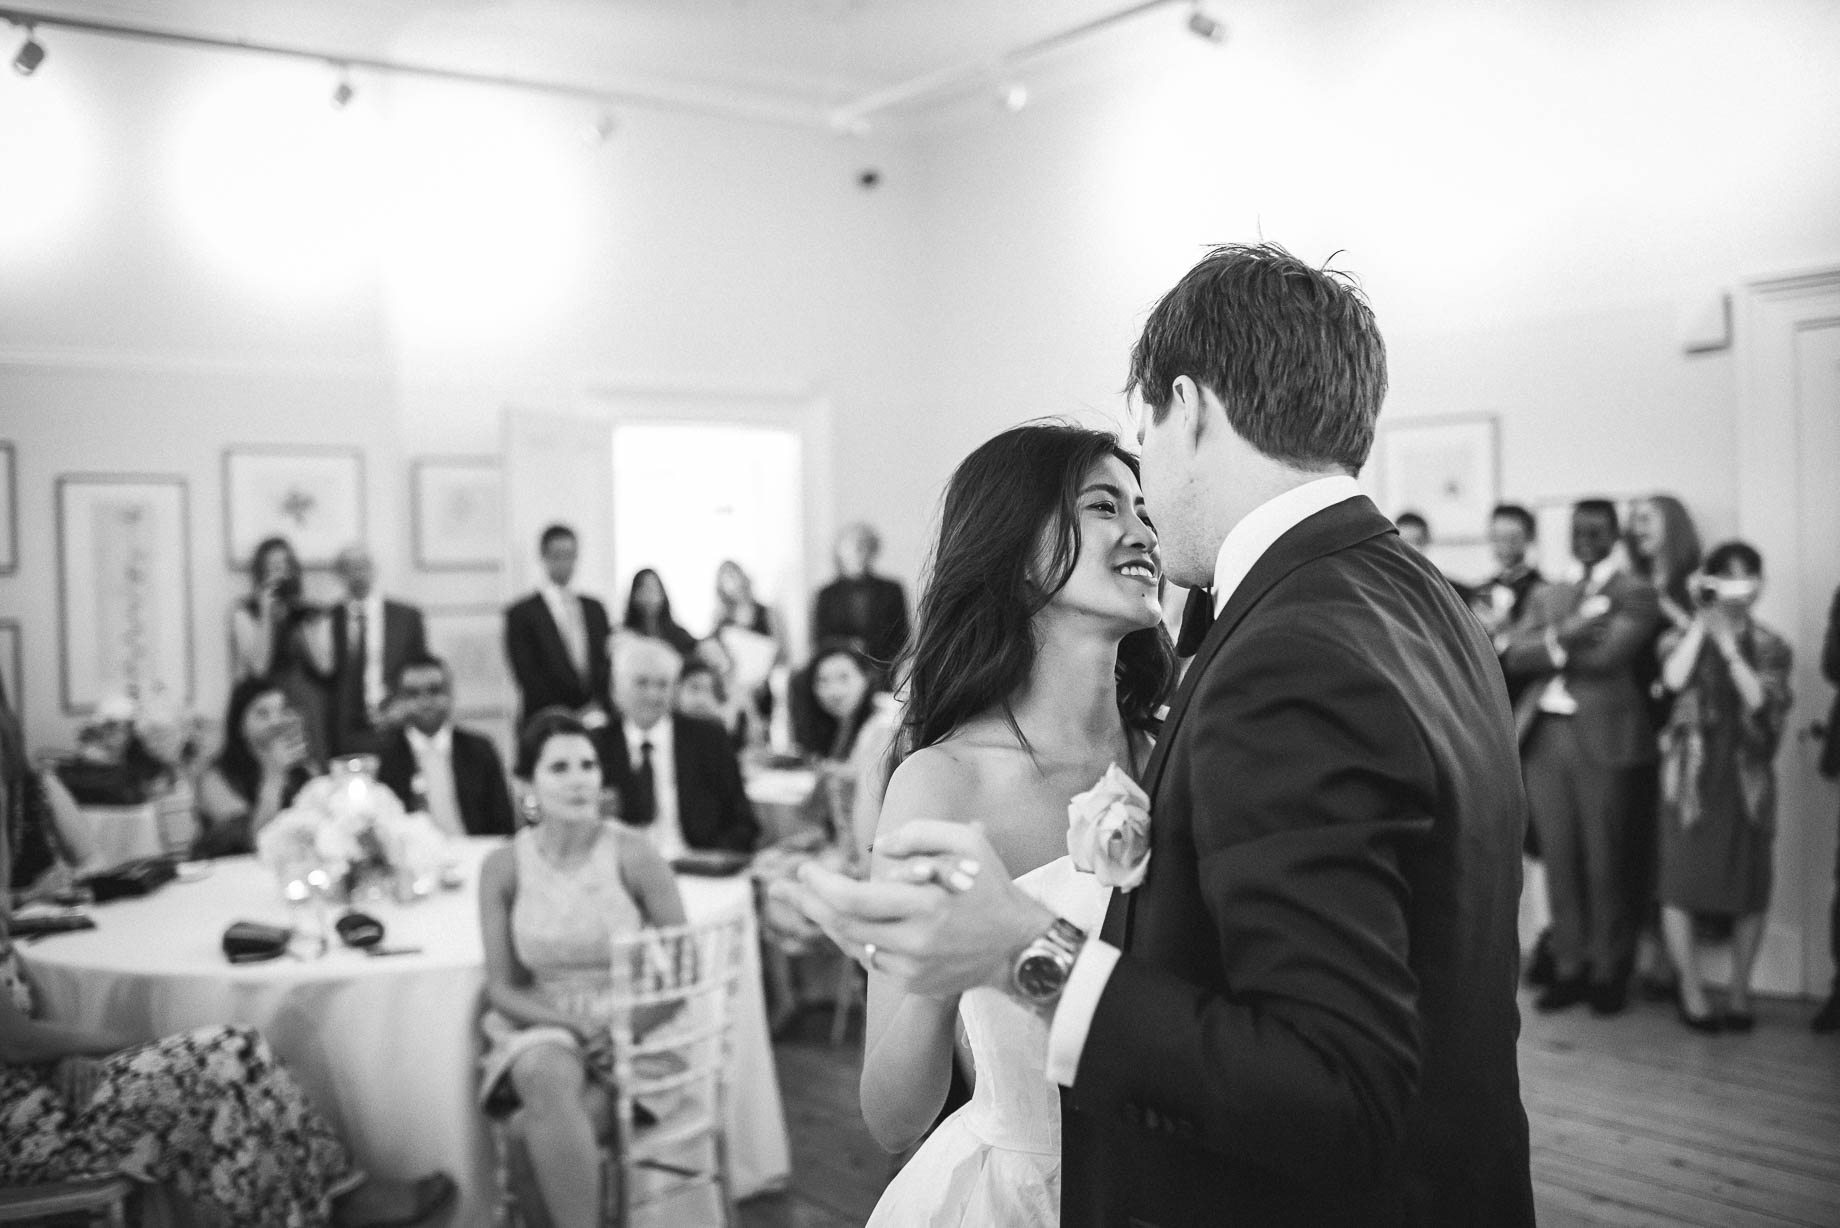 Kew Gardens wedding photography - Guy Collier Photography - Gloria and Frederik (171 of 173)